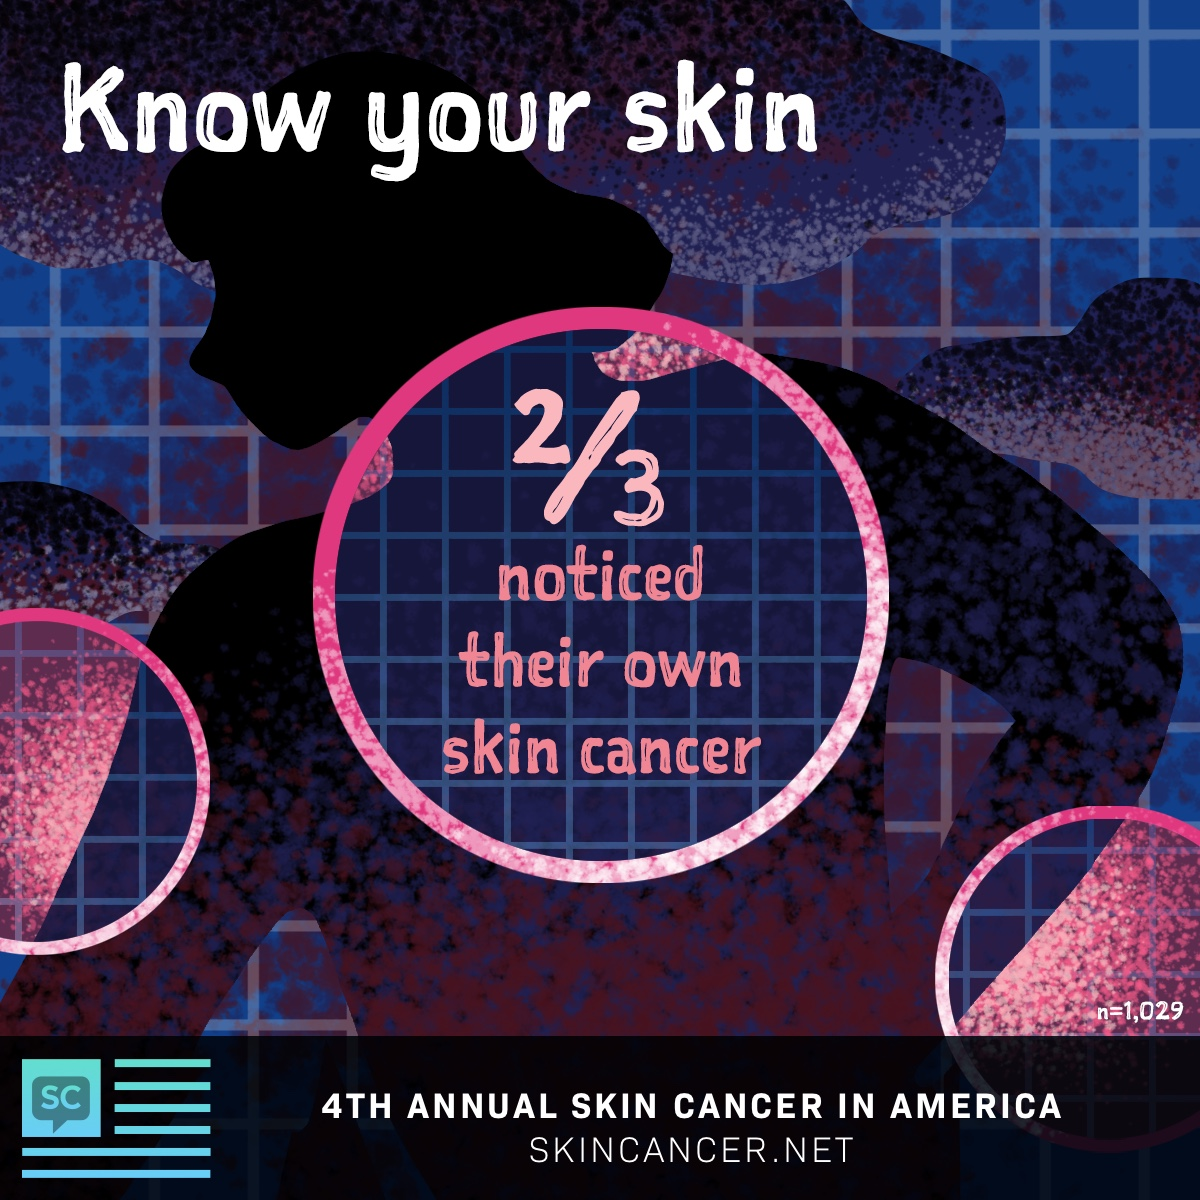 SkinCancer.net 2020 In America survey results, ⅔ of respondents noticed their own skin cancer.